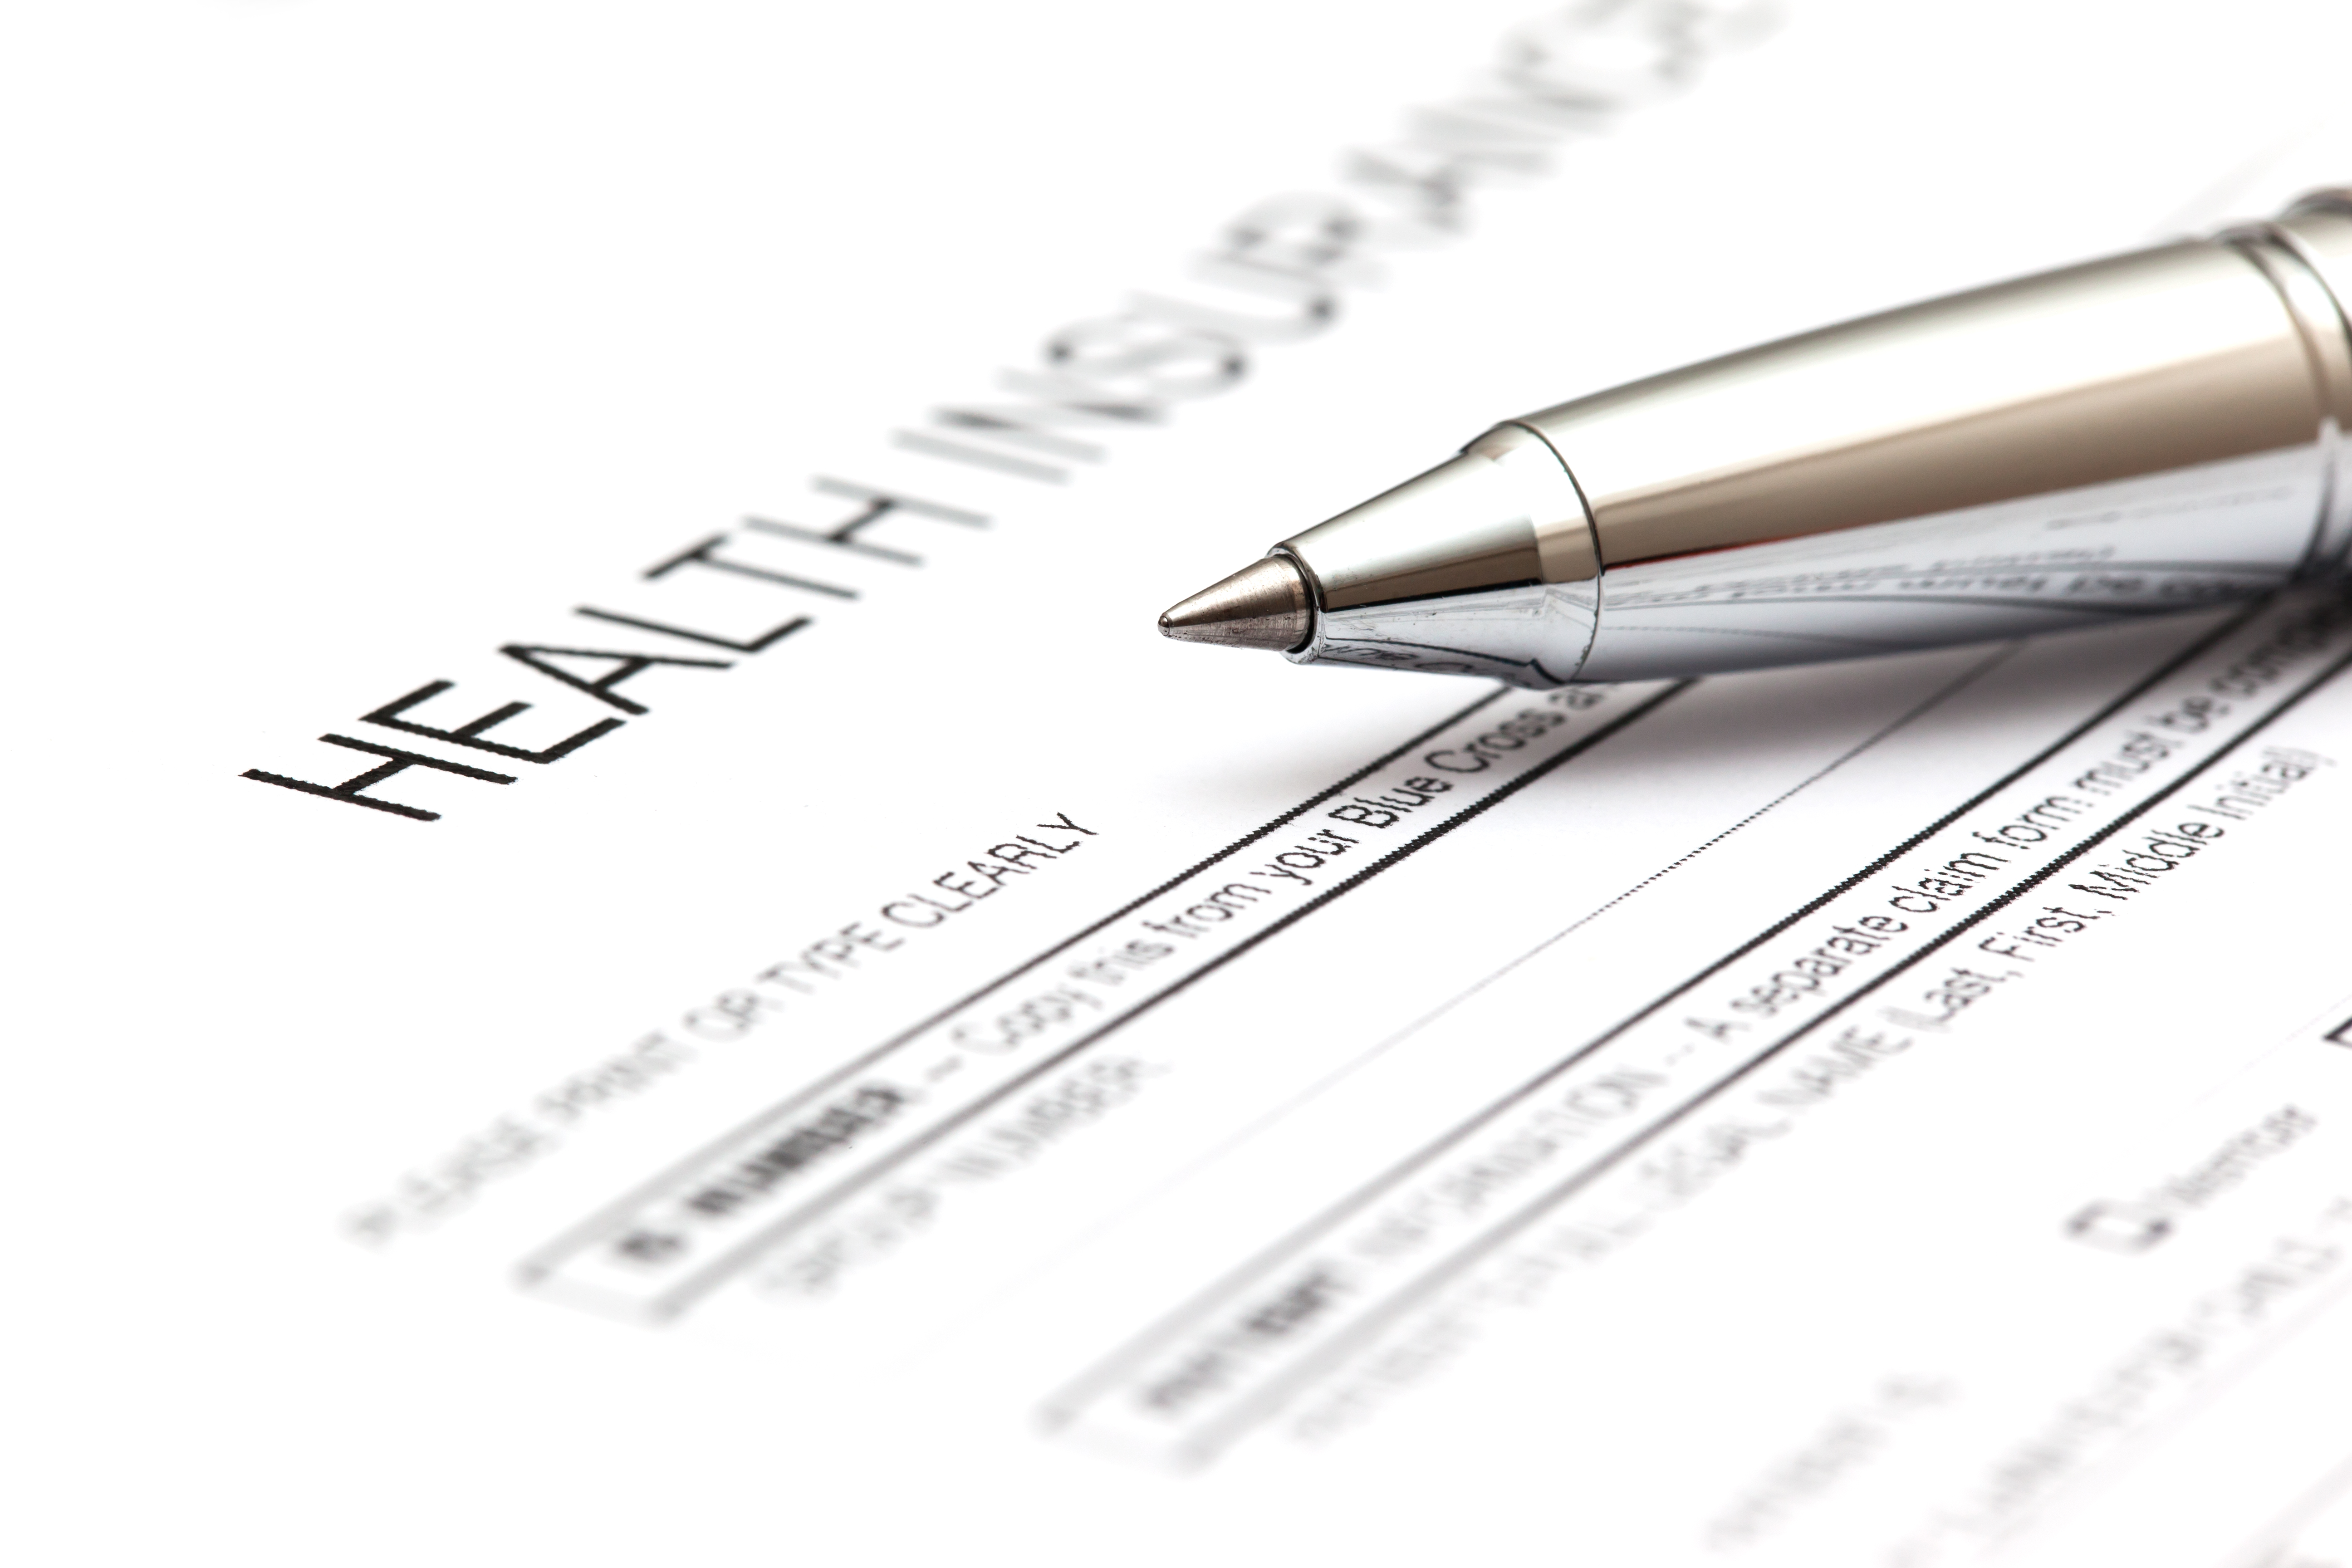 IRS Extends ACA Deadline for Employers to Furnish Forms | Paychex